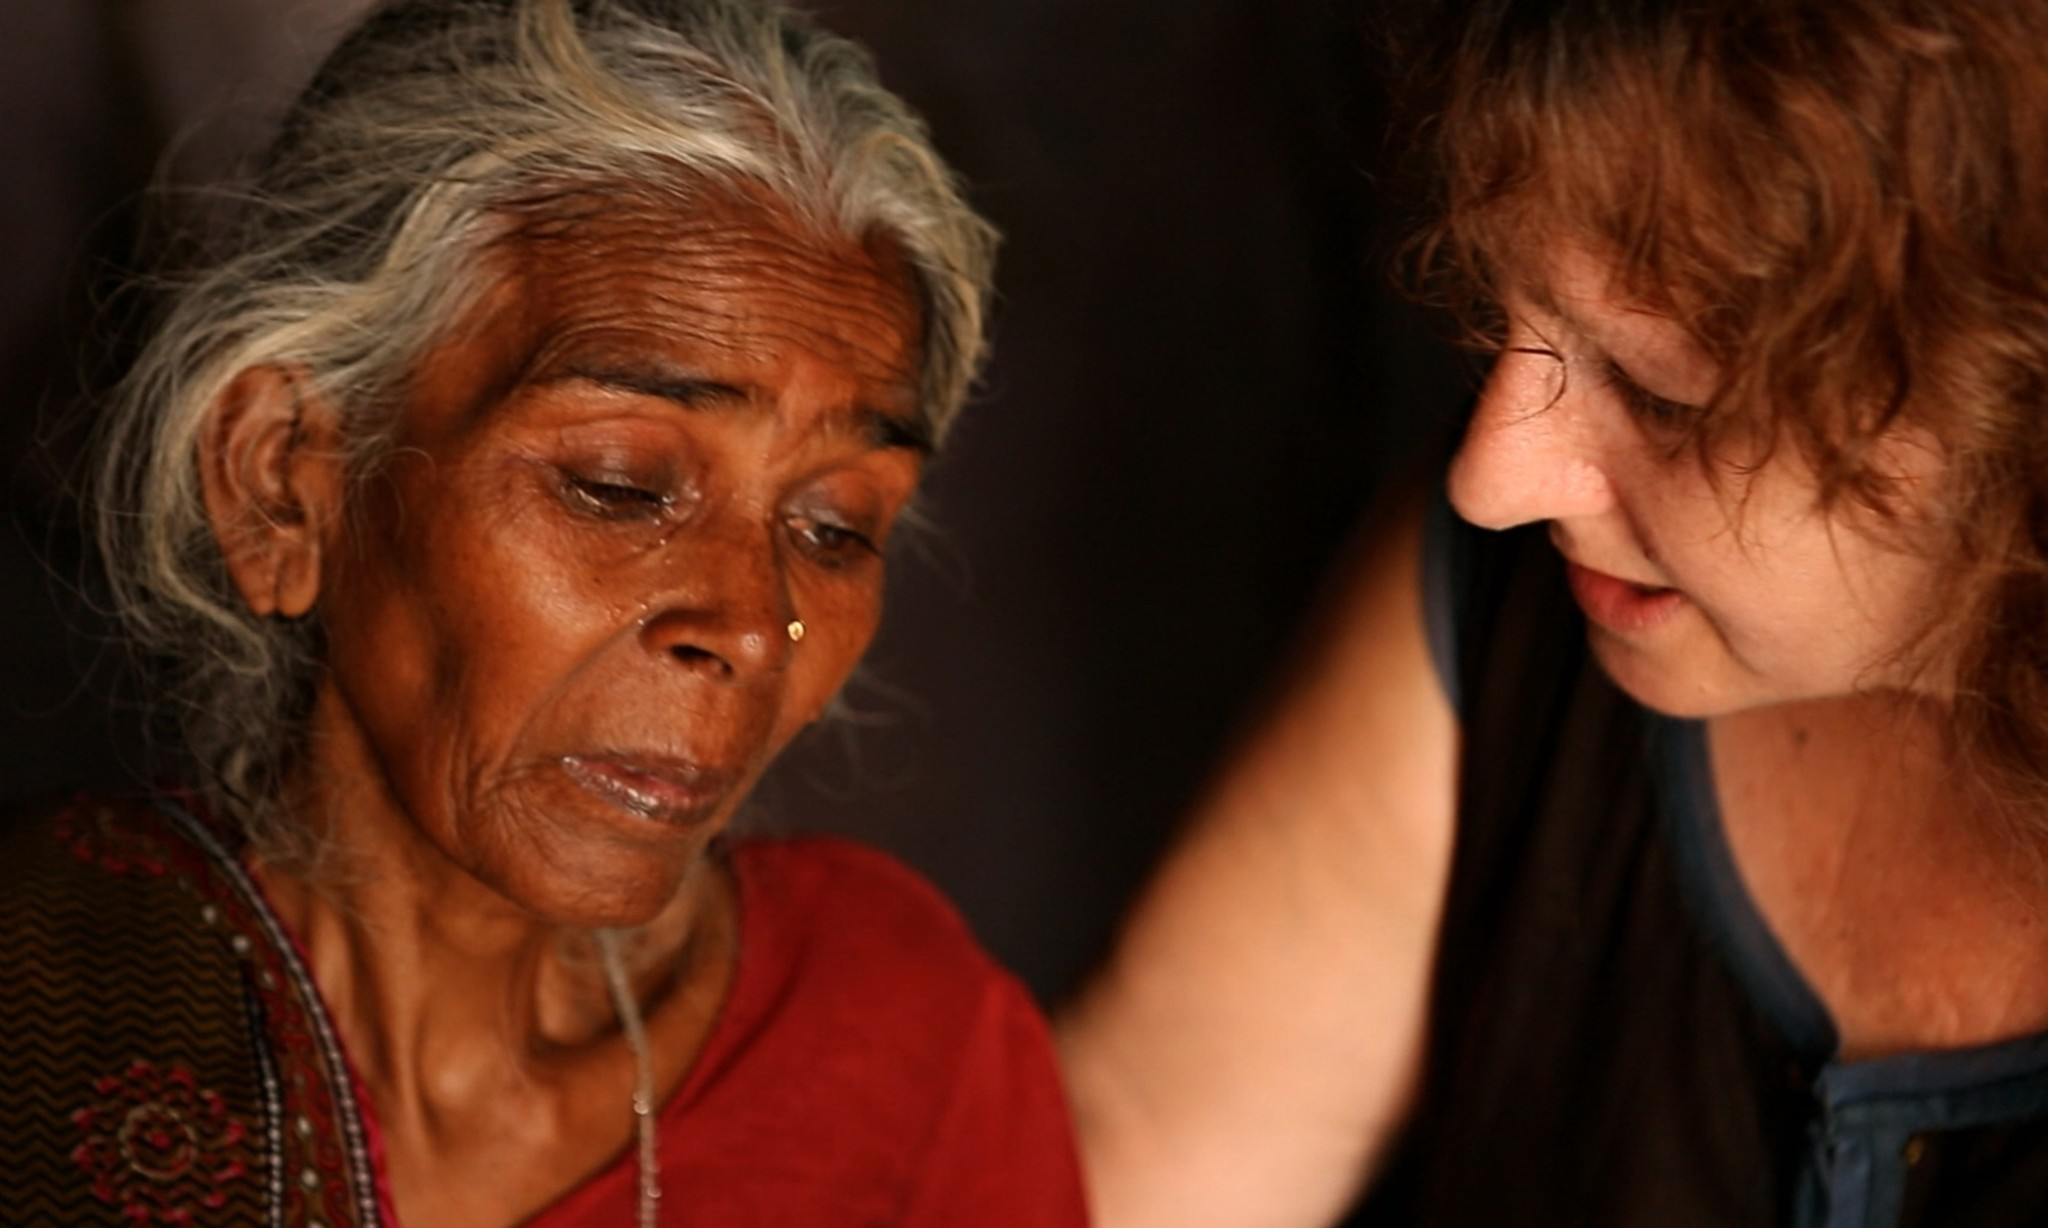 India's Daughter: 'I made a film on rape in India. Men's brutal attitudes truly shocked me'